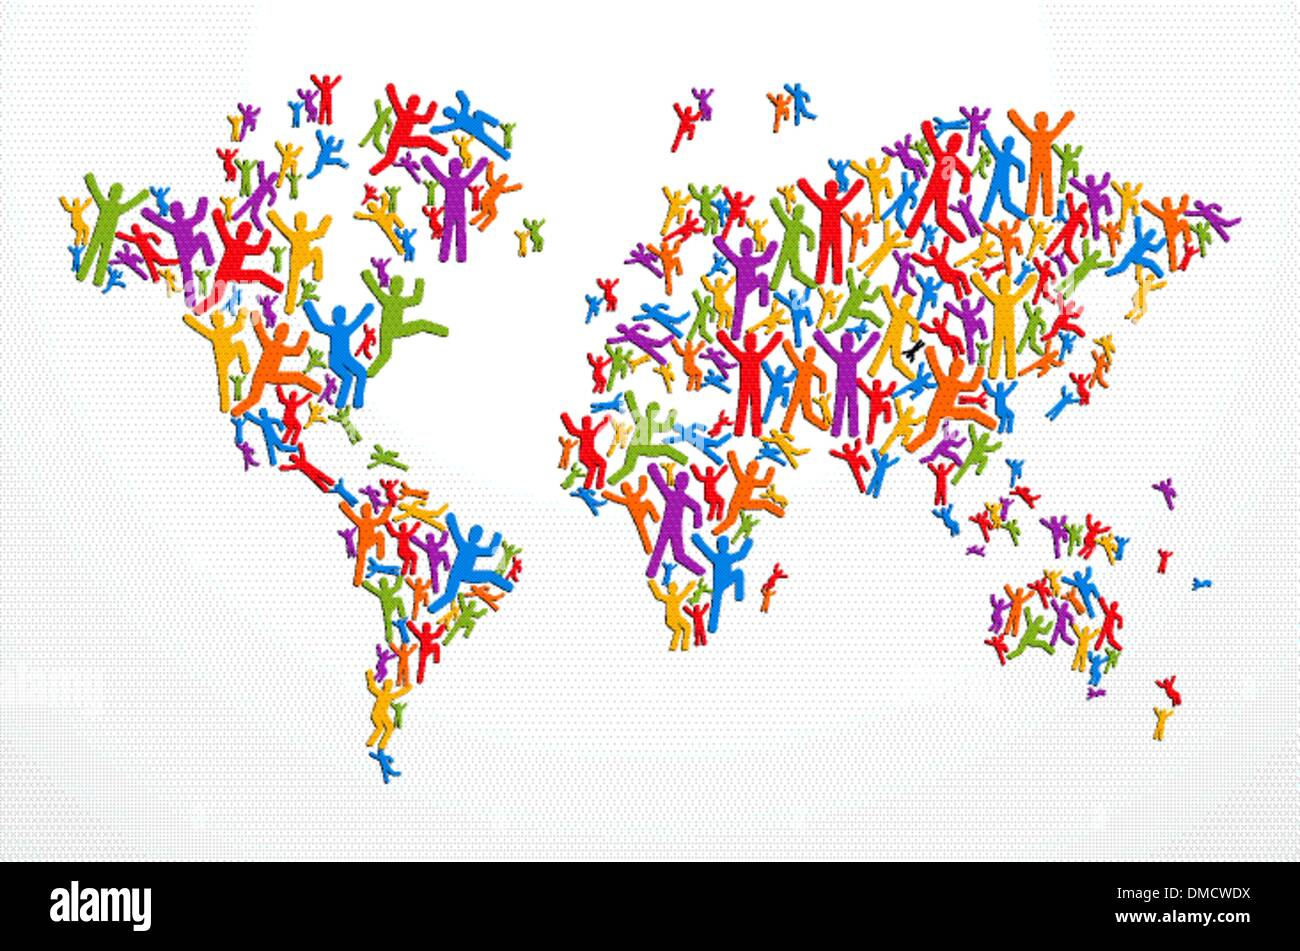 Diverstiy people concept world map - Stock Image